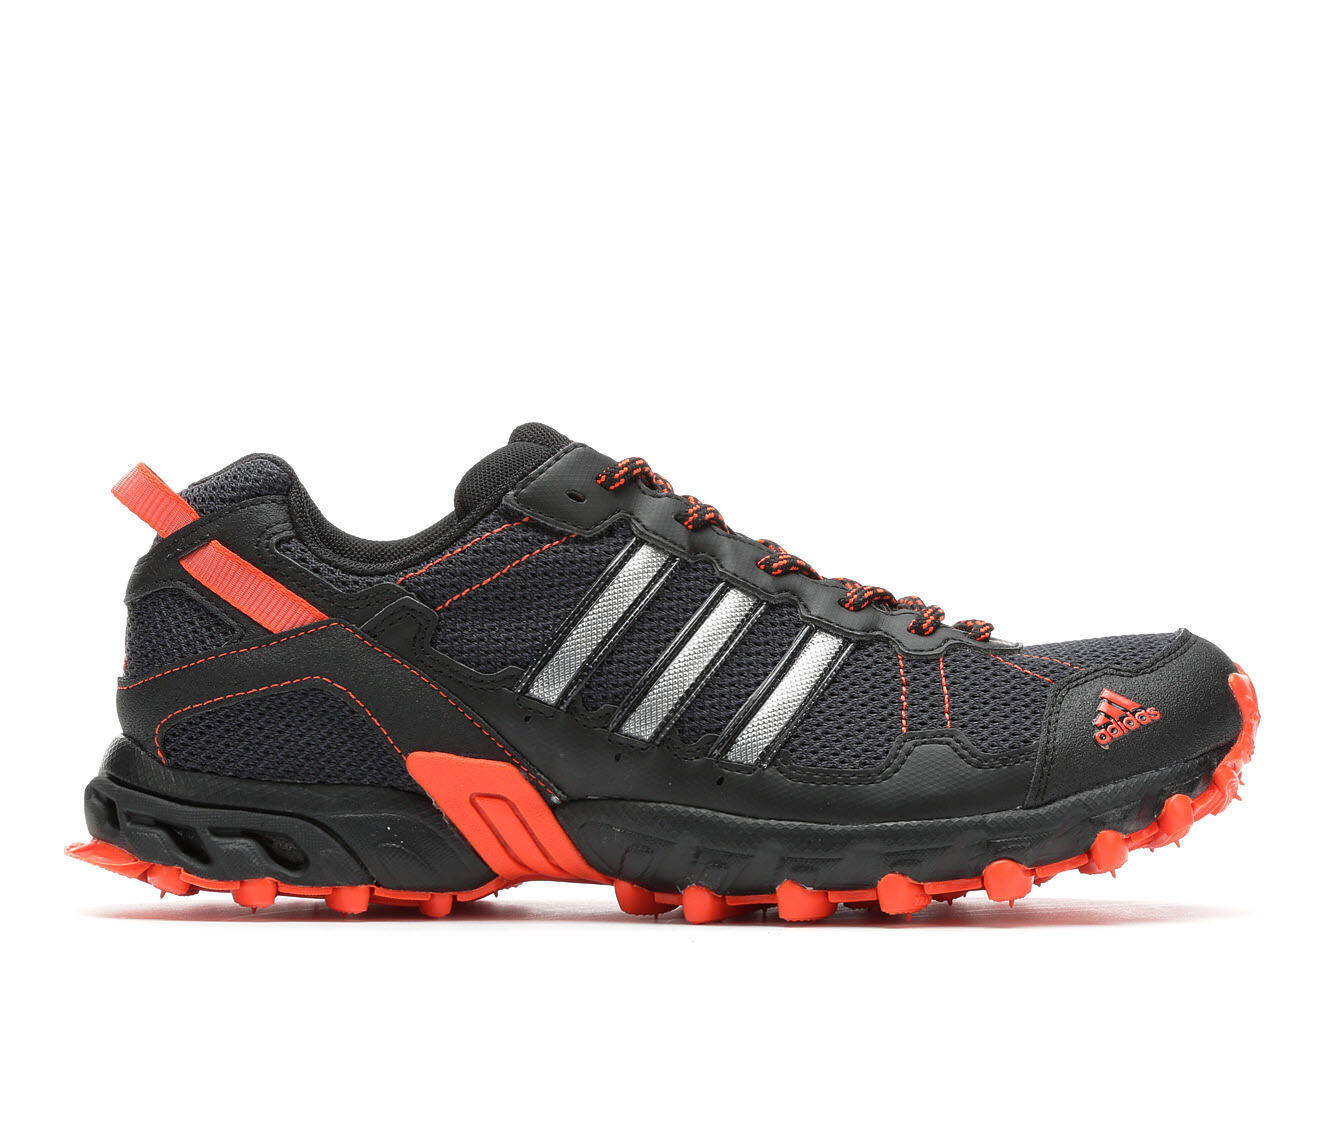 Shoe Carnival Trail Running Shoes